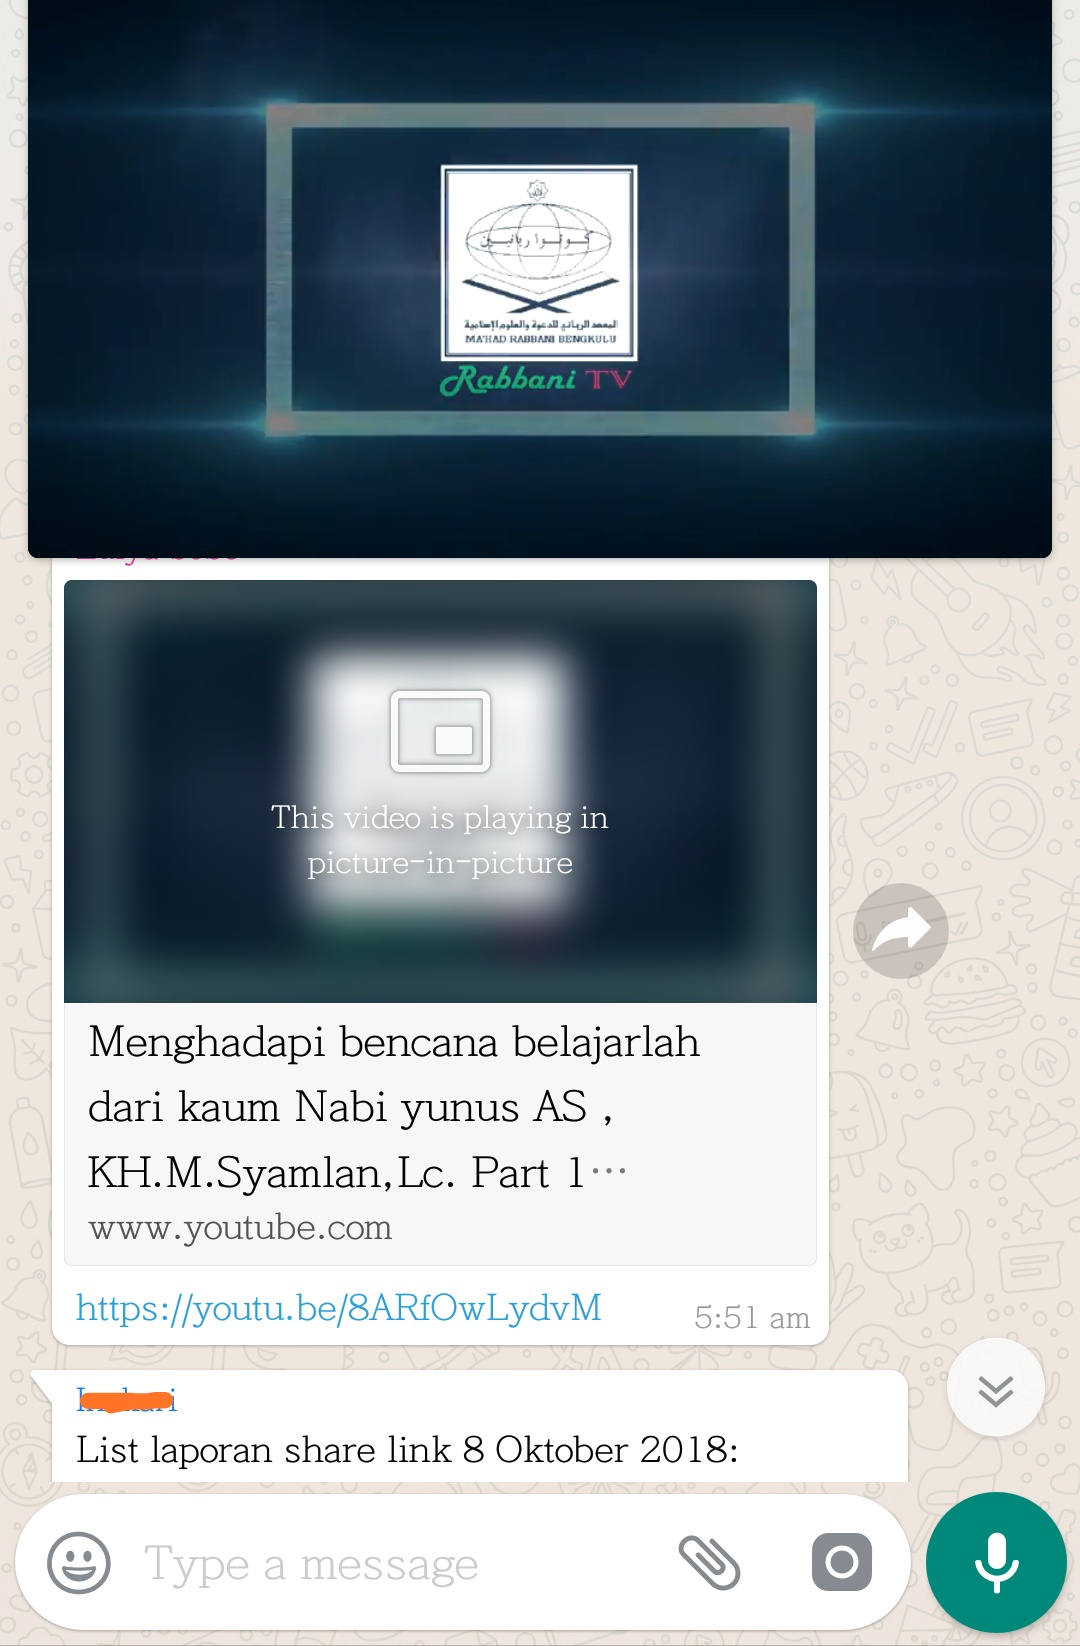 Fitur mode picture in picture whatsapp